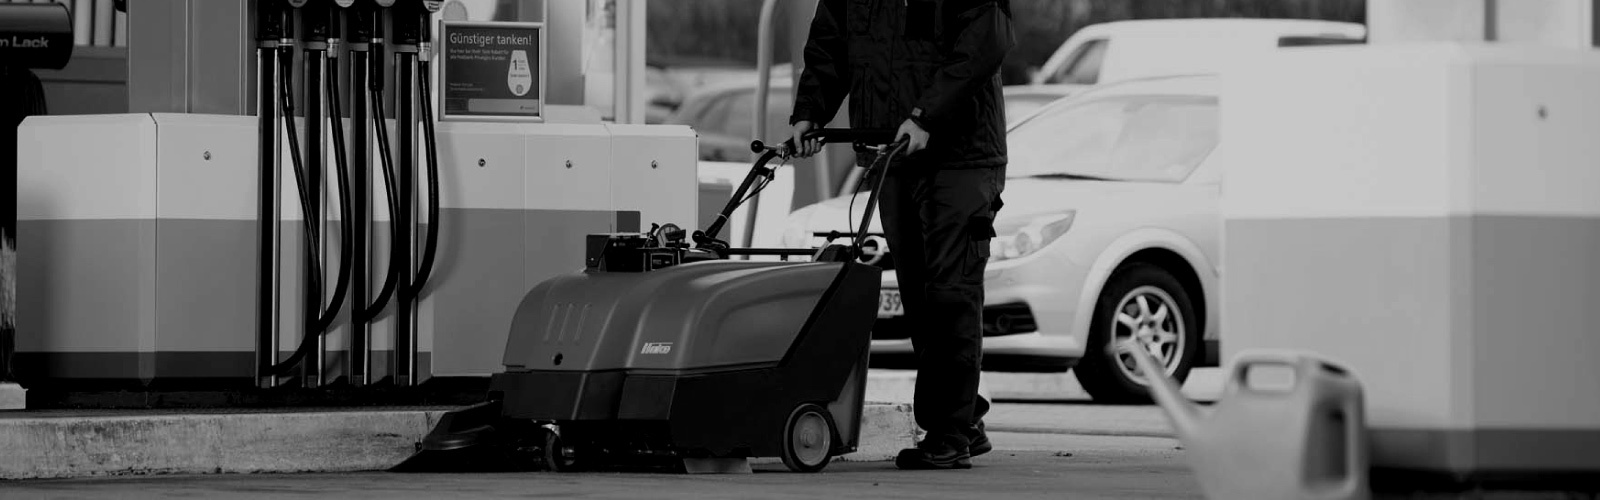 Sweepmaster B/P 650 Industrial Floor Sweeper or Carpet Area Vacuum